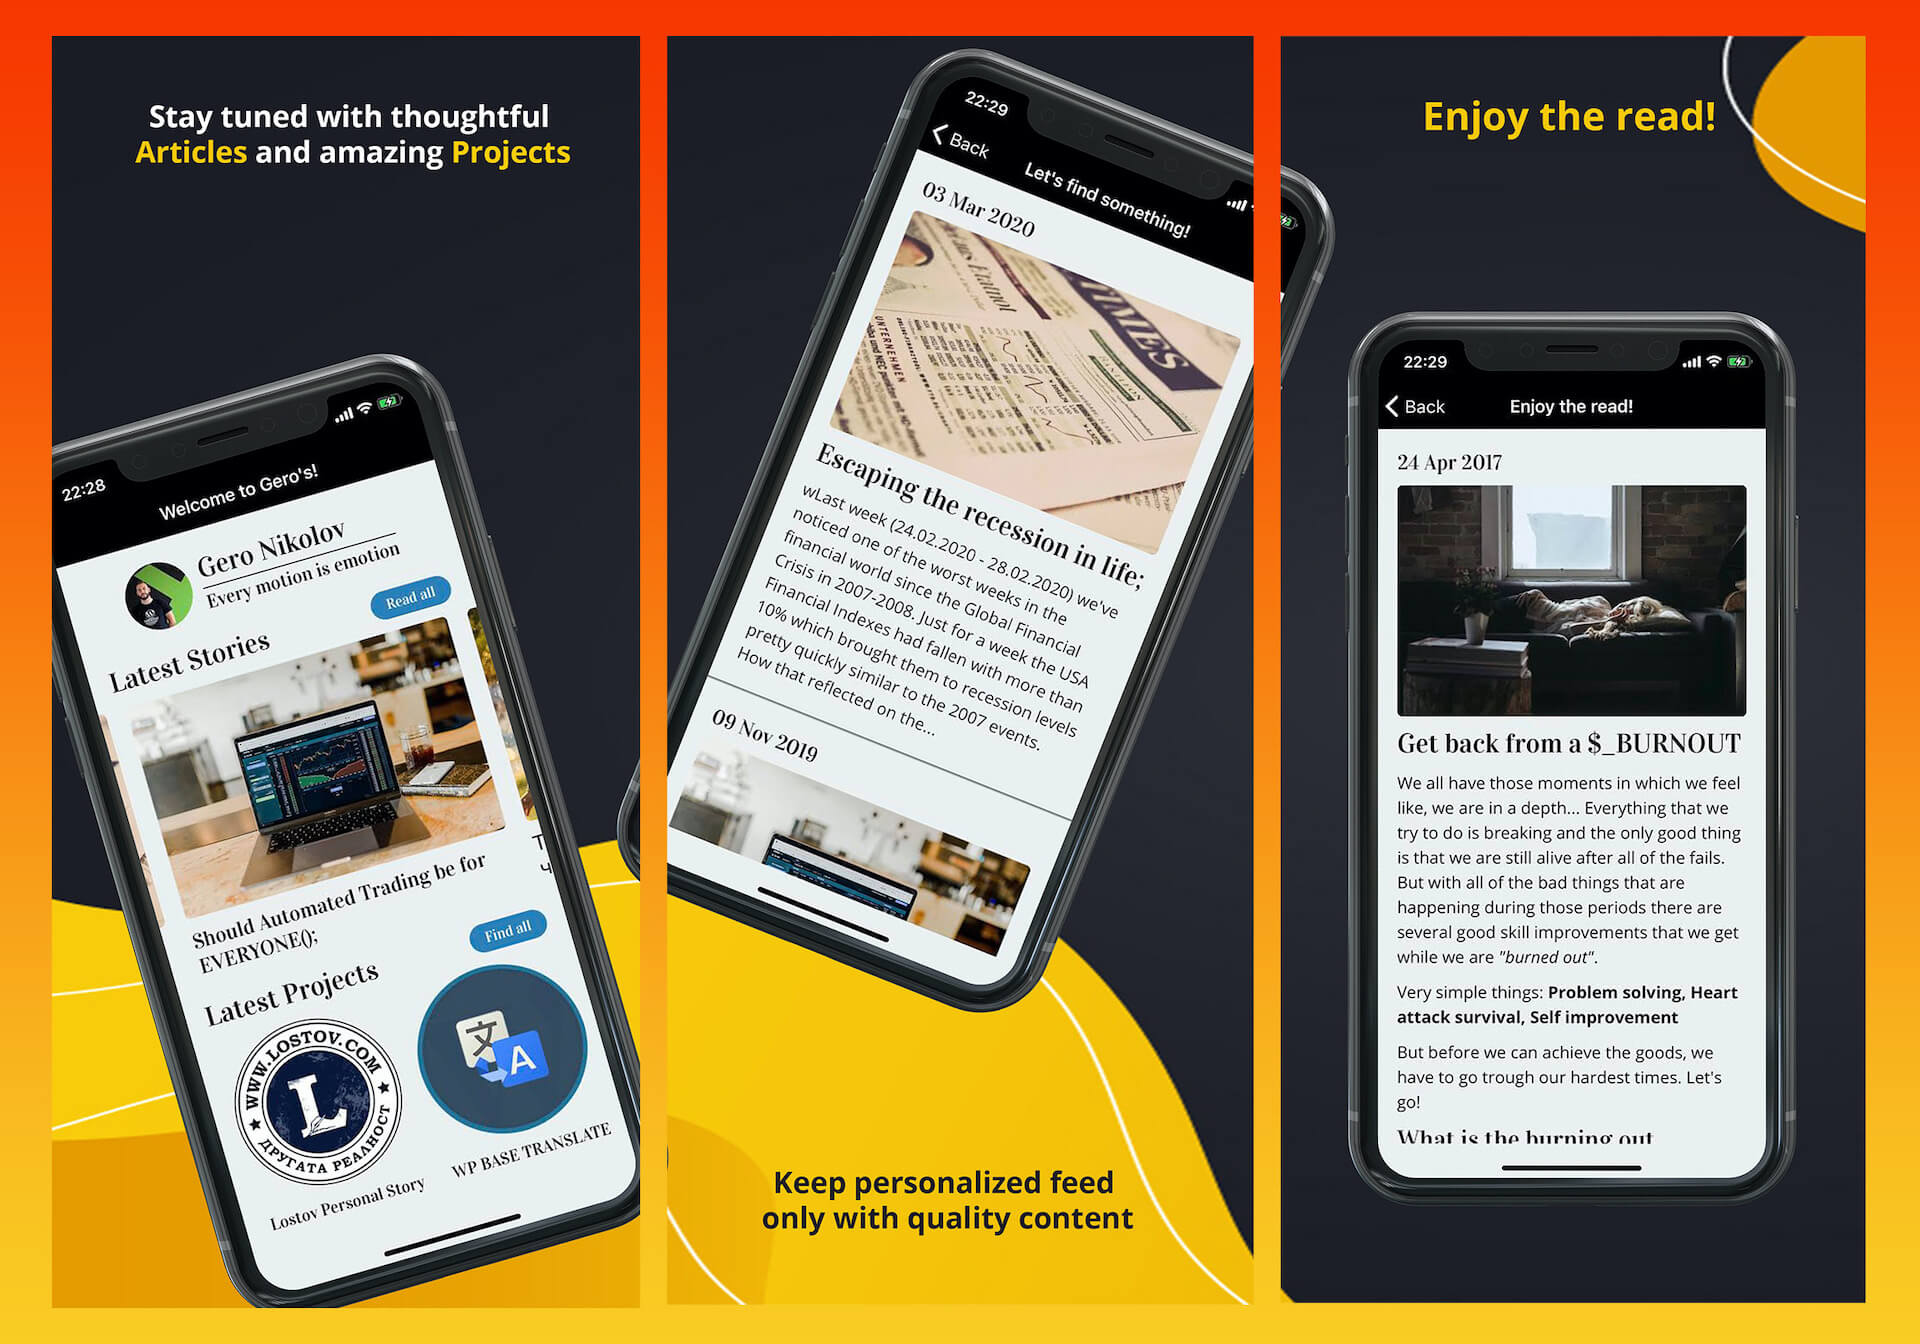 Geros FREE iOS Application, available on App Store for iPhones.